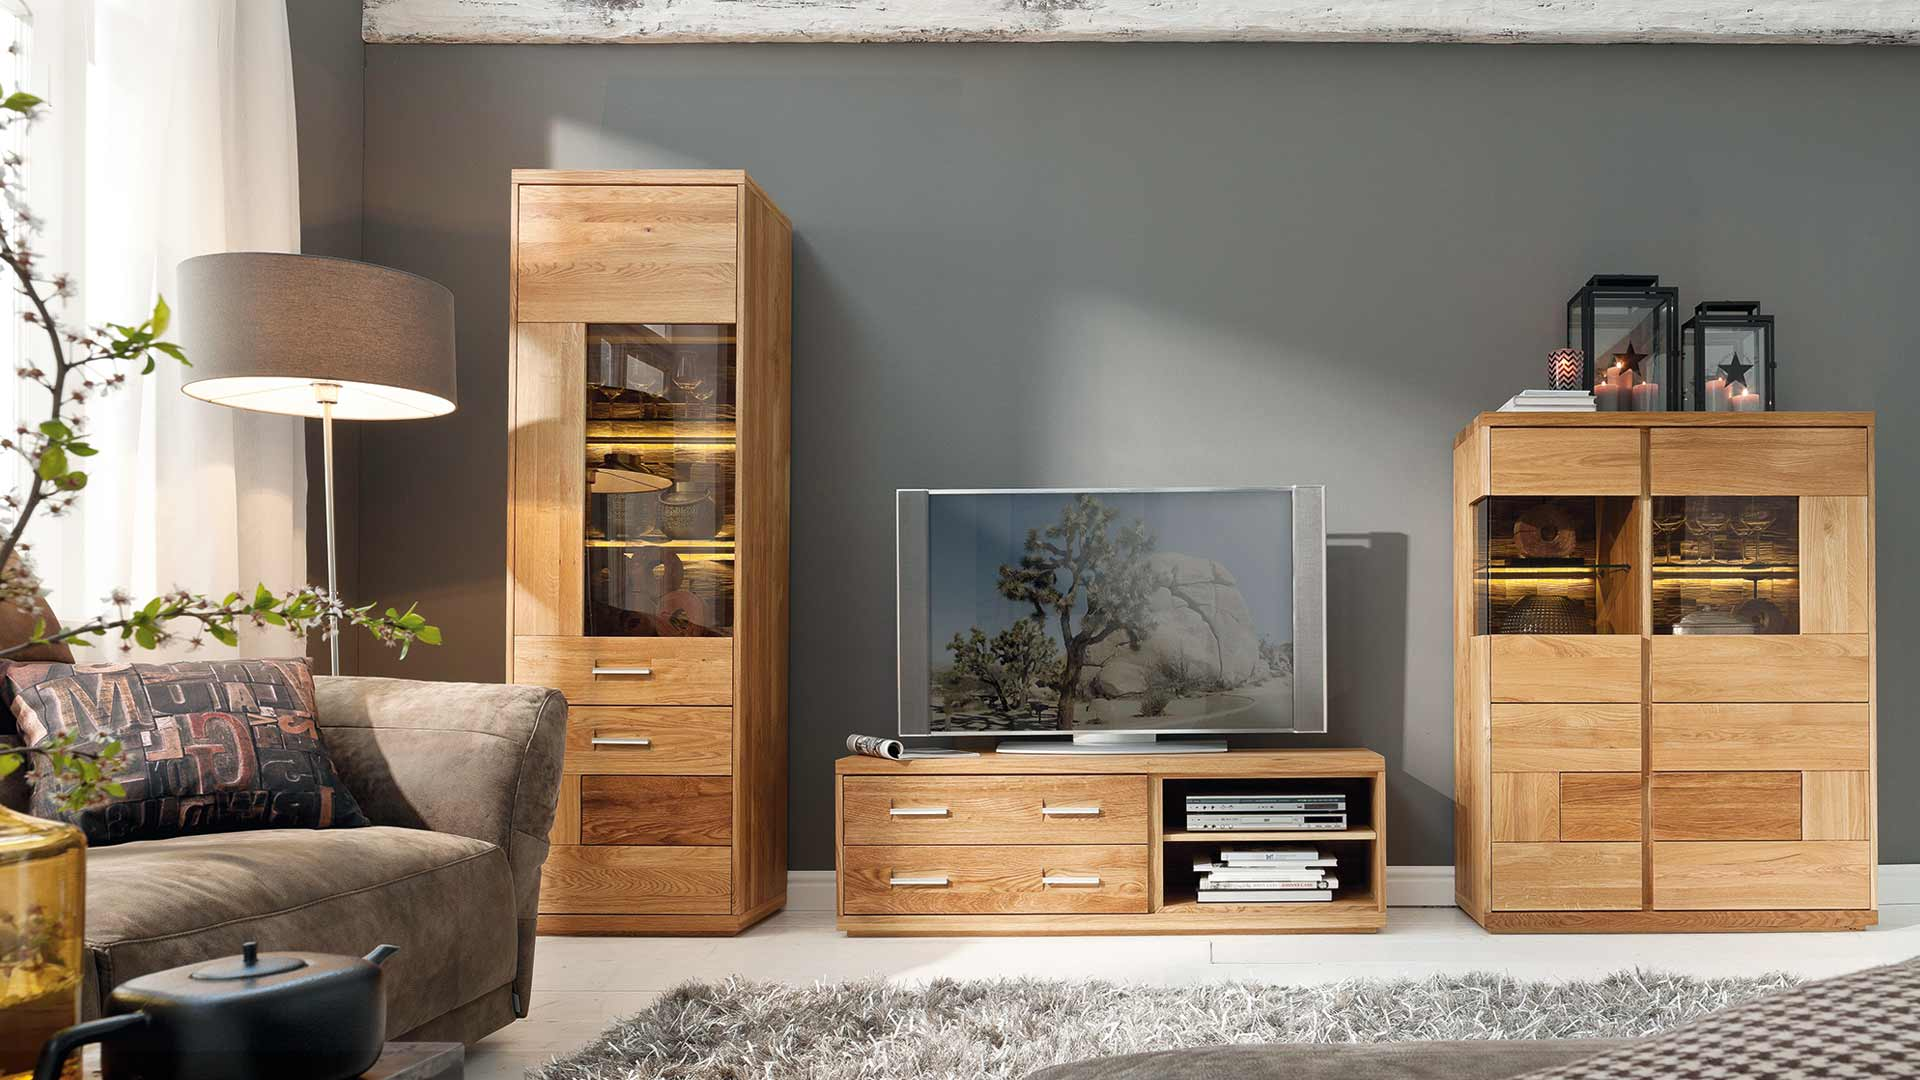 natura oakville von natura einrichten in garbsen nahe. Black Bedroom Furniture Sets. Home Design Ideas